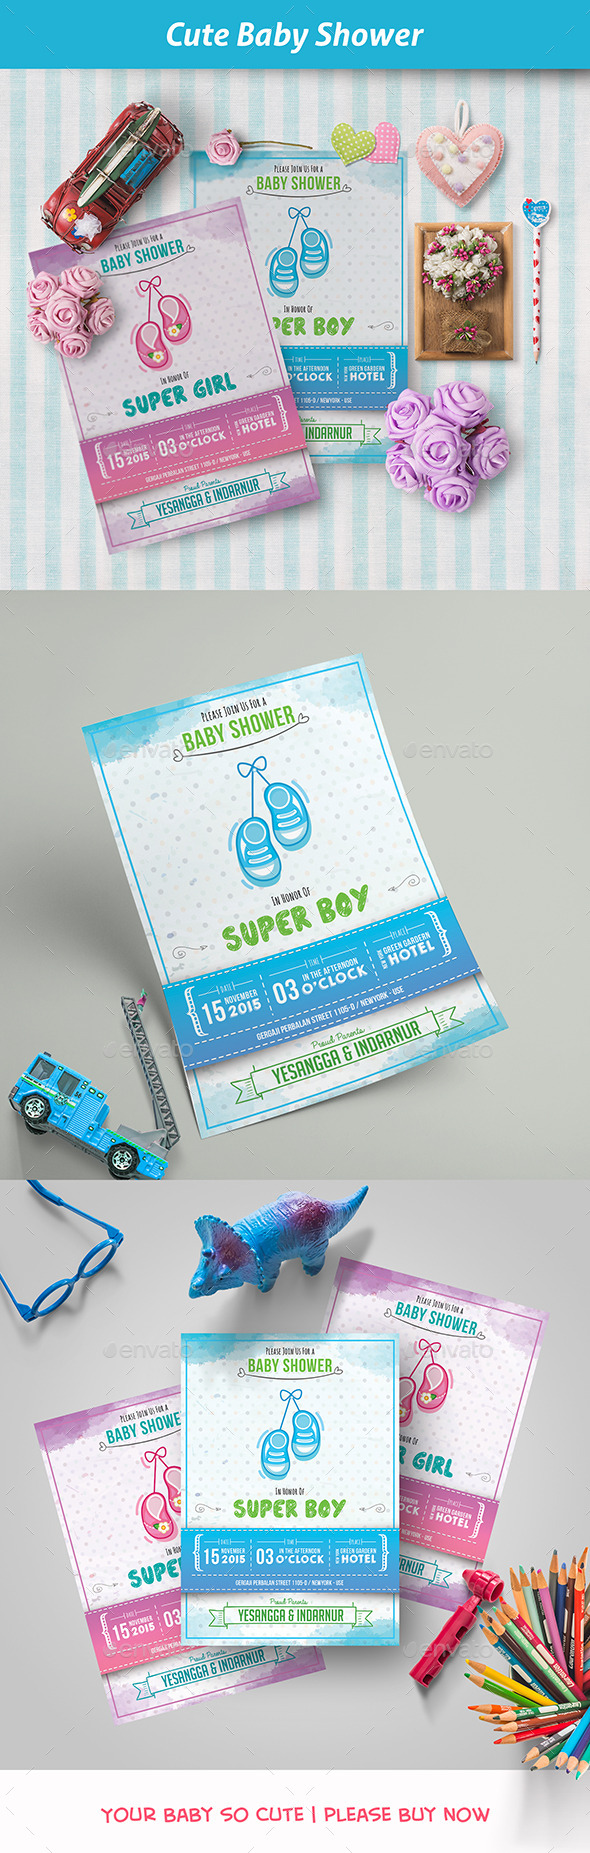 Cute Baby Shower - Invitations Cards & Invites